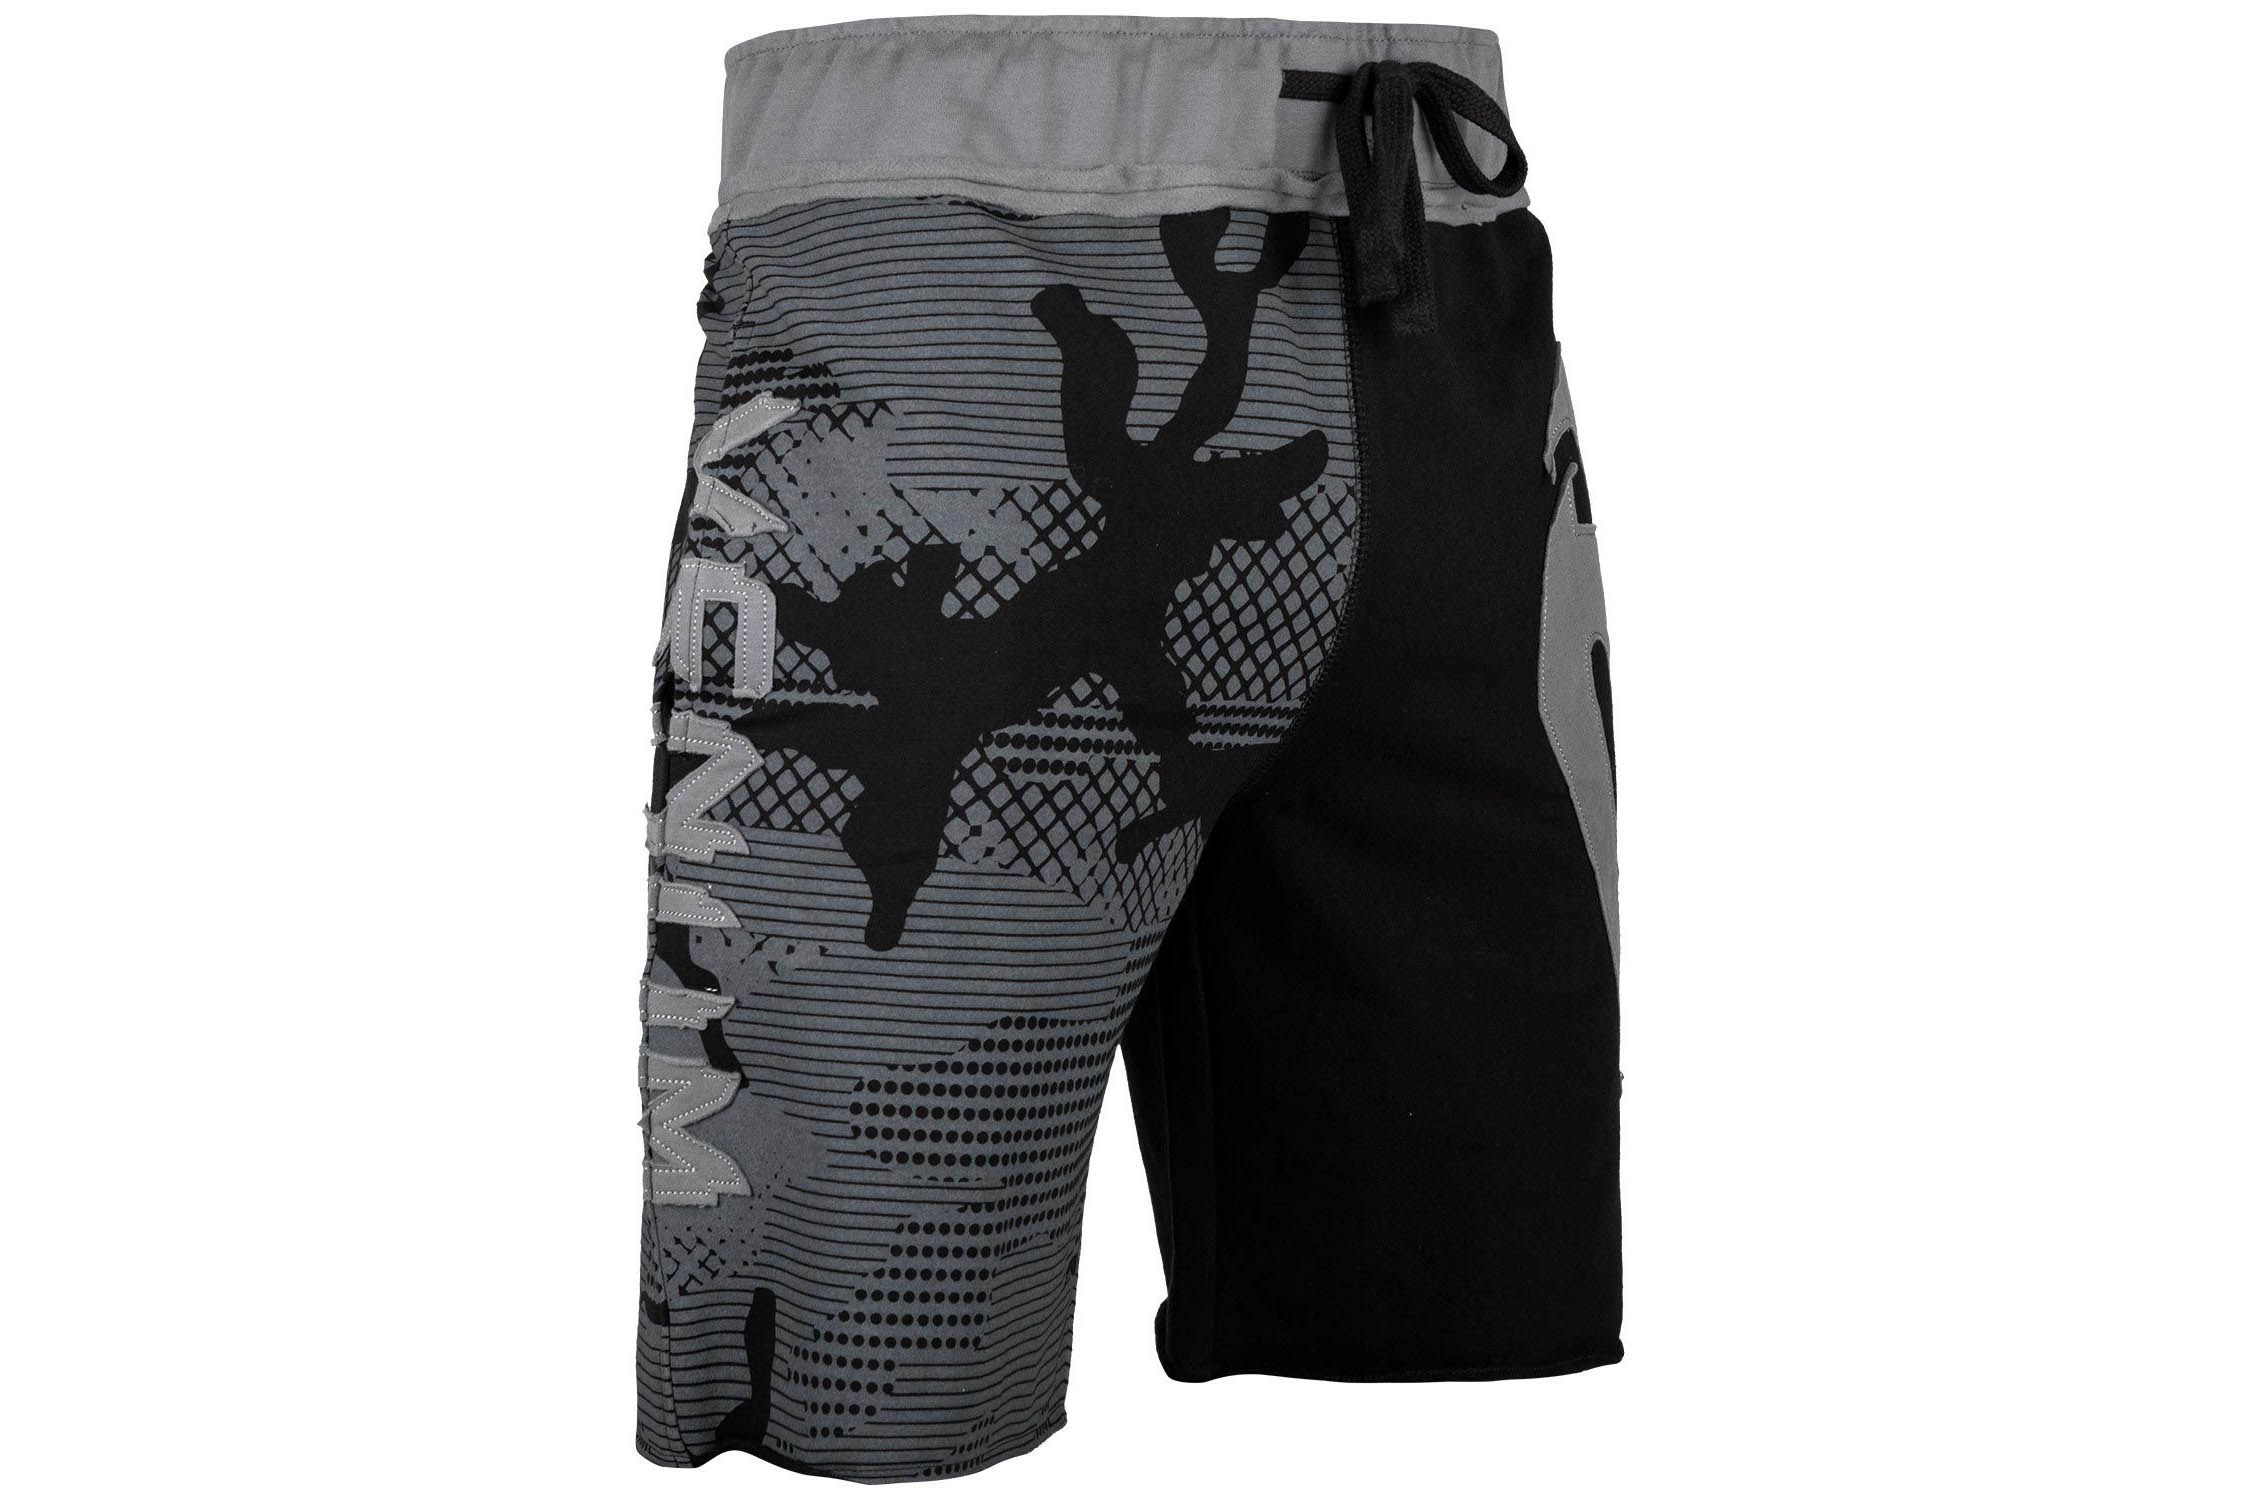 Sport Shorts - Venum, Assault Series